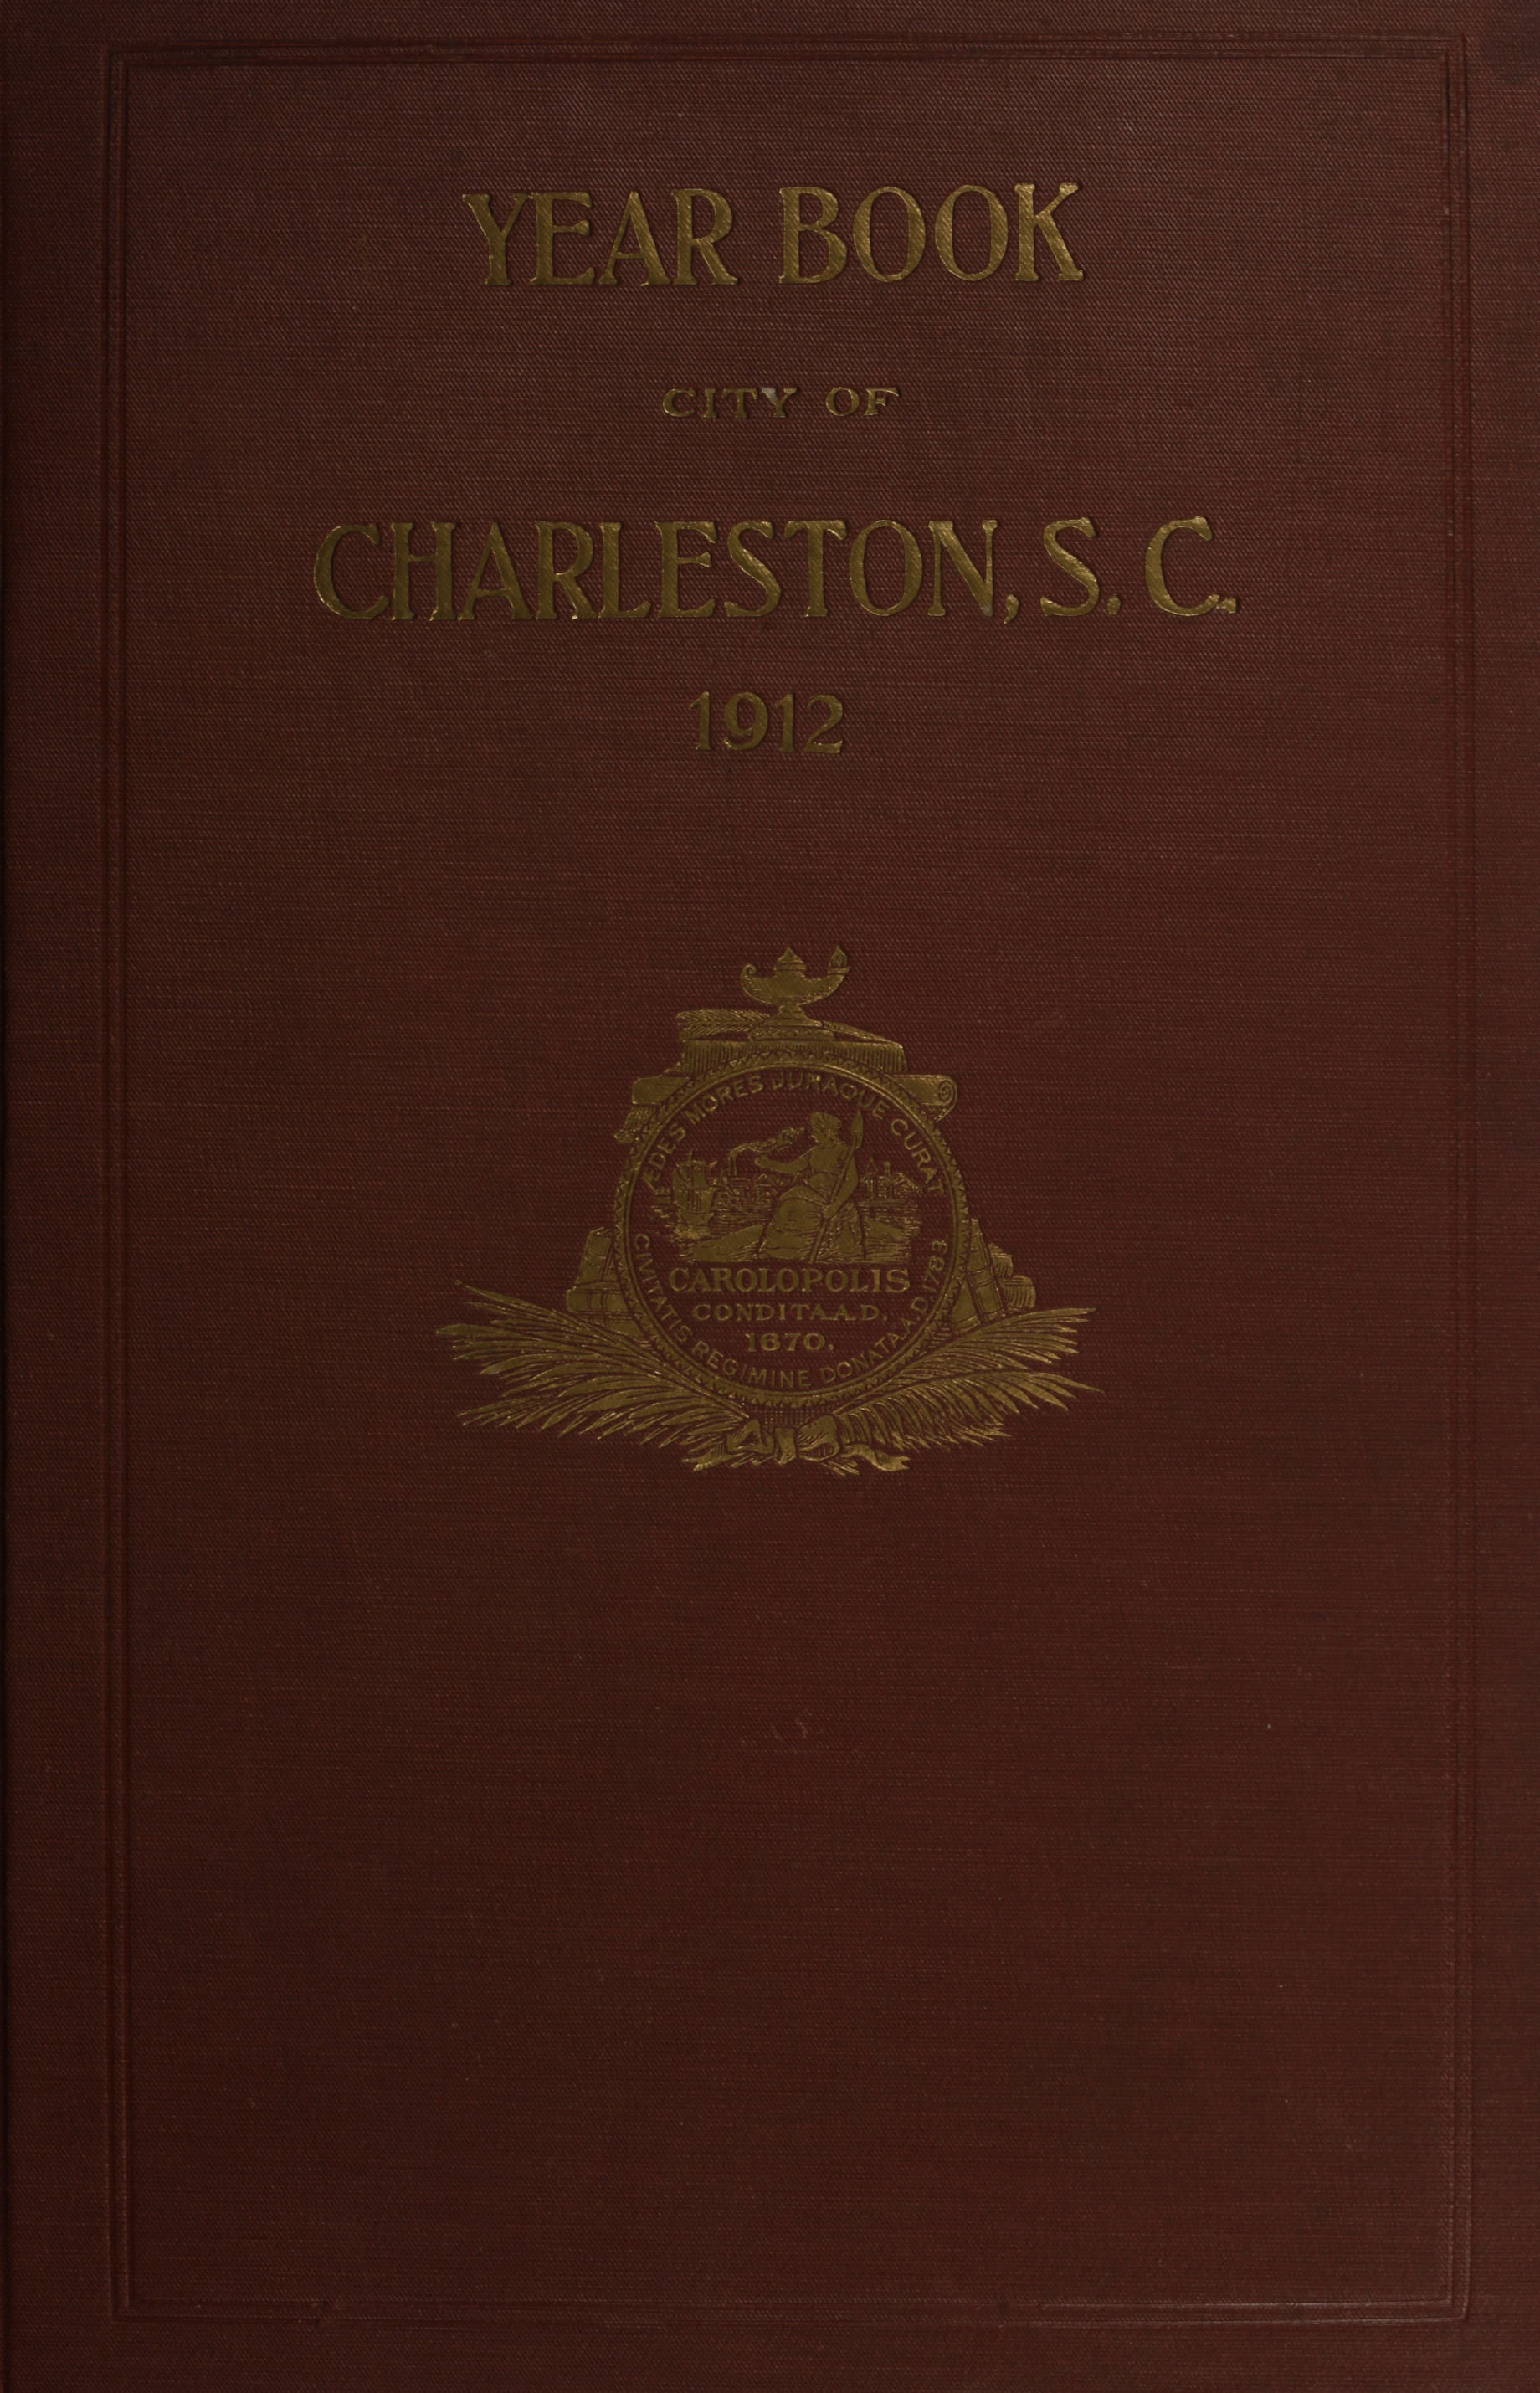 Charleston Yearbook, 1912